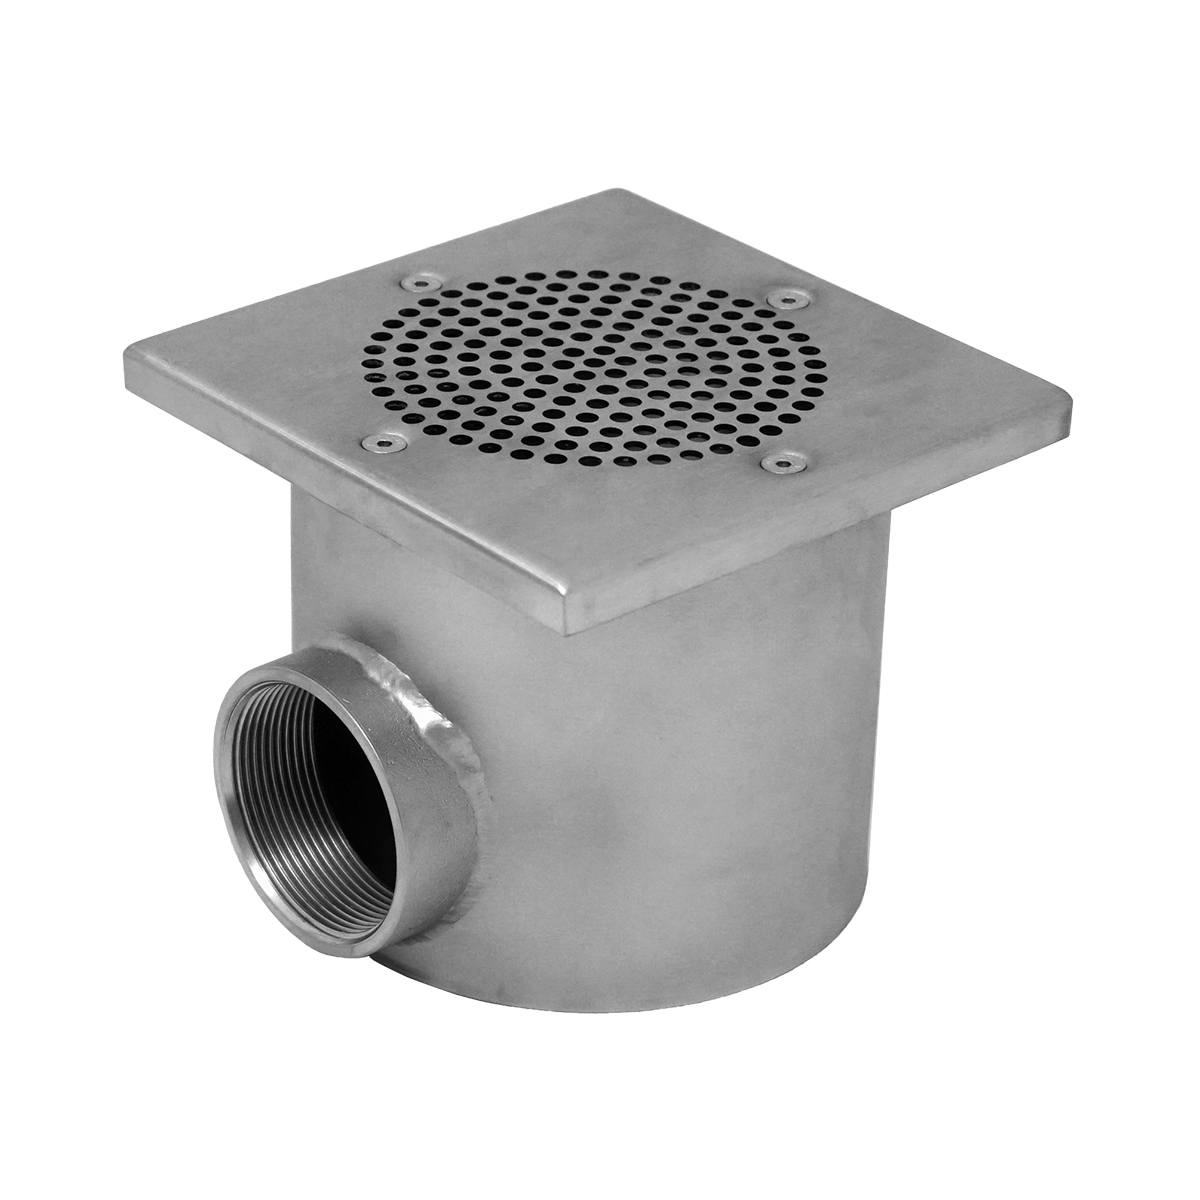 """Ocean® Main Drain V4A PRO """"Square"""" 150x150 mm, for liner, concrete- and tile pools, 2"""" female thread, brushed Ocean® Main Drain V4A PRO """"Square"""" 150x150 mm, for liner, concrete- and tile pools, 2"""" female thread, brushed"""